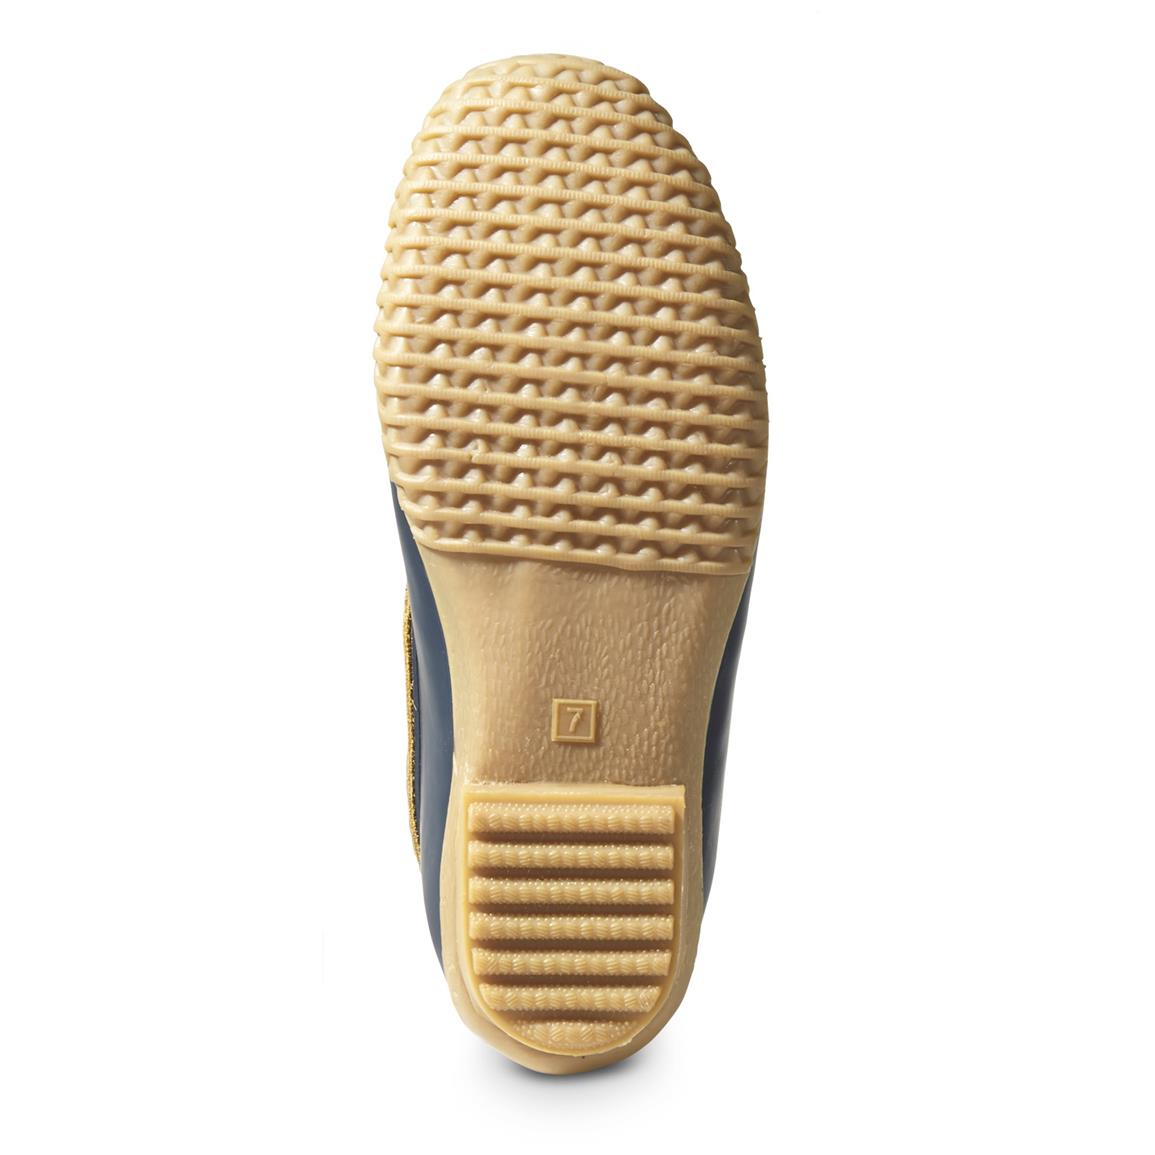 Rubber shell outsole